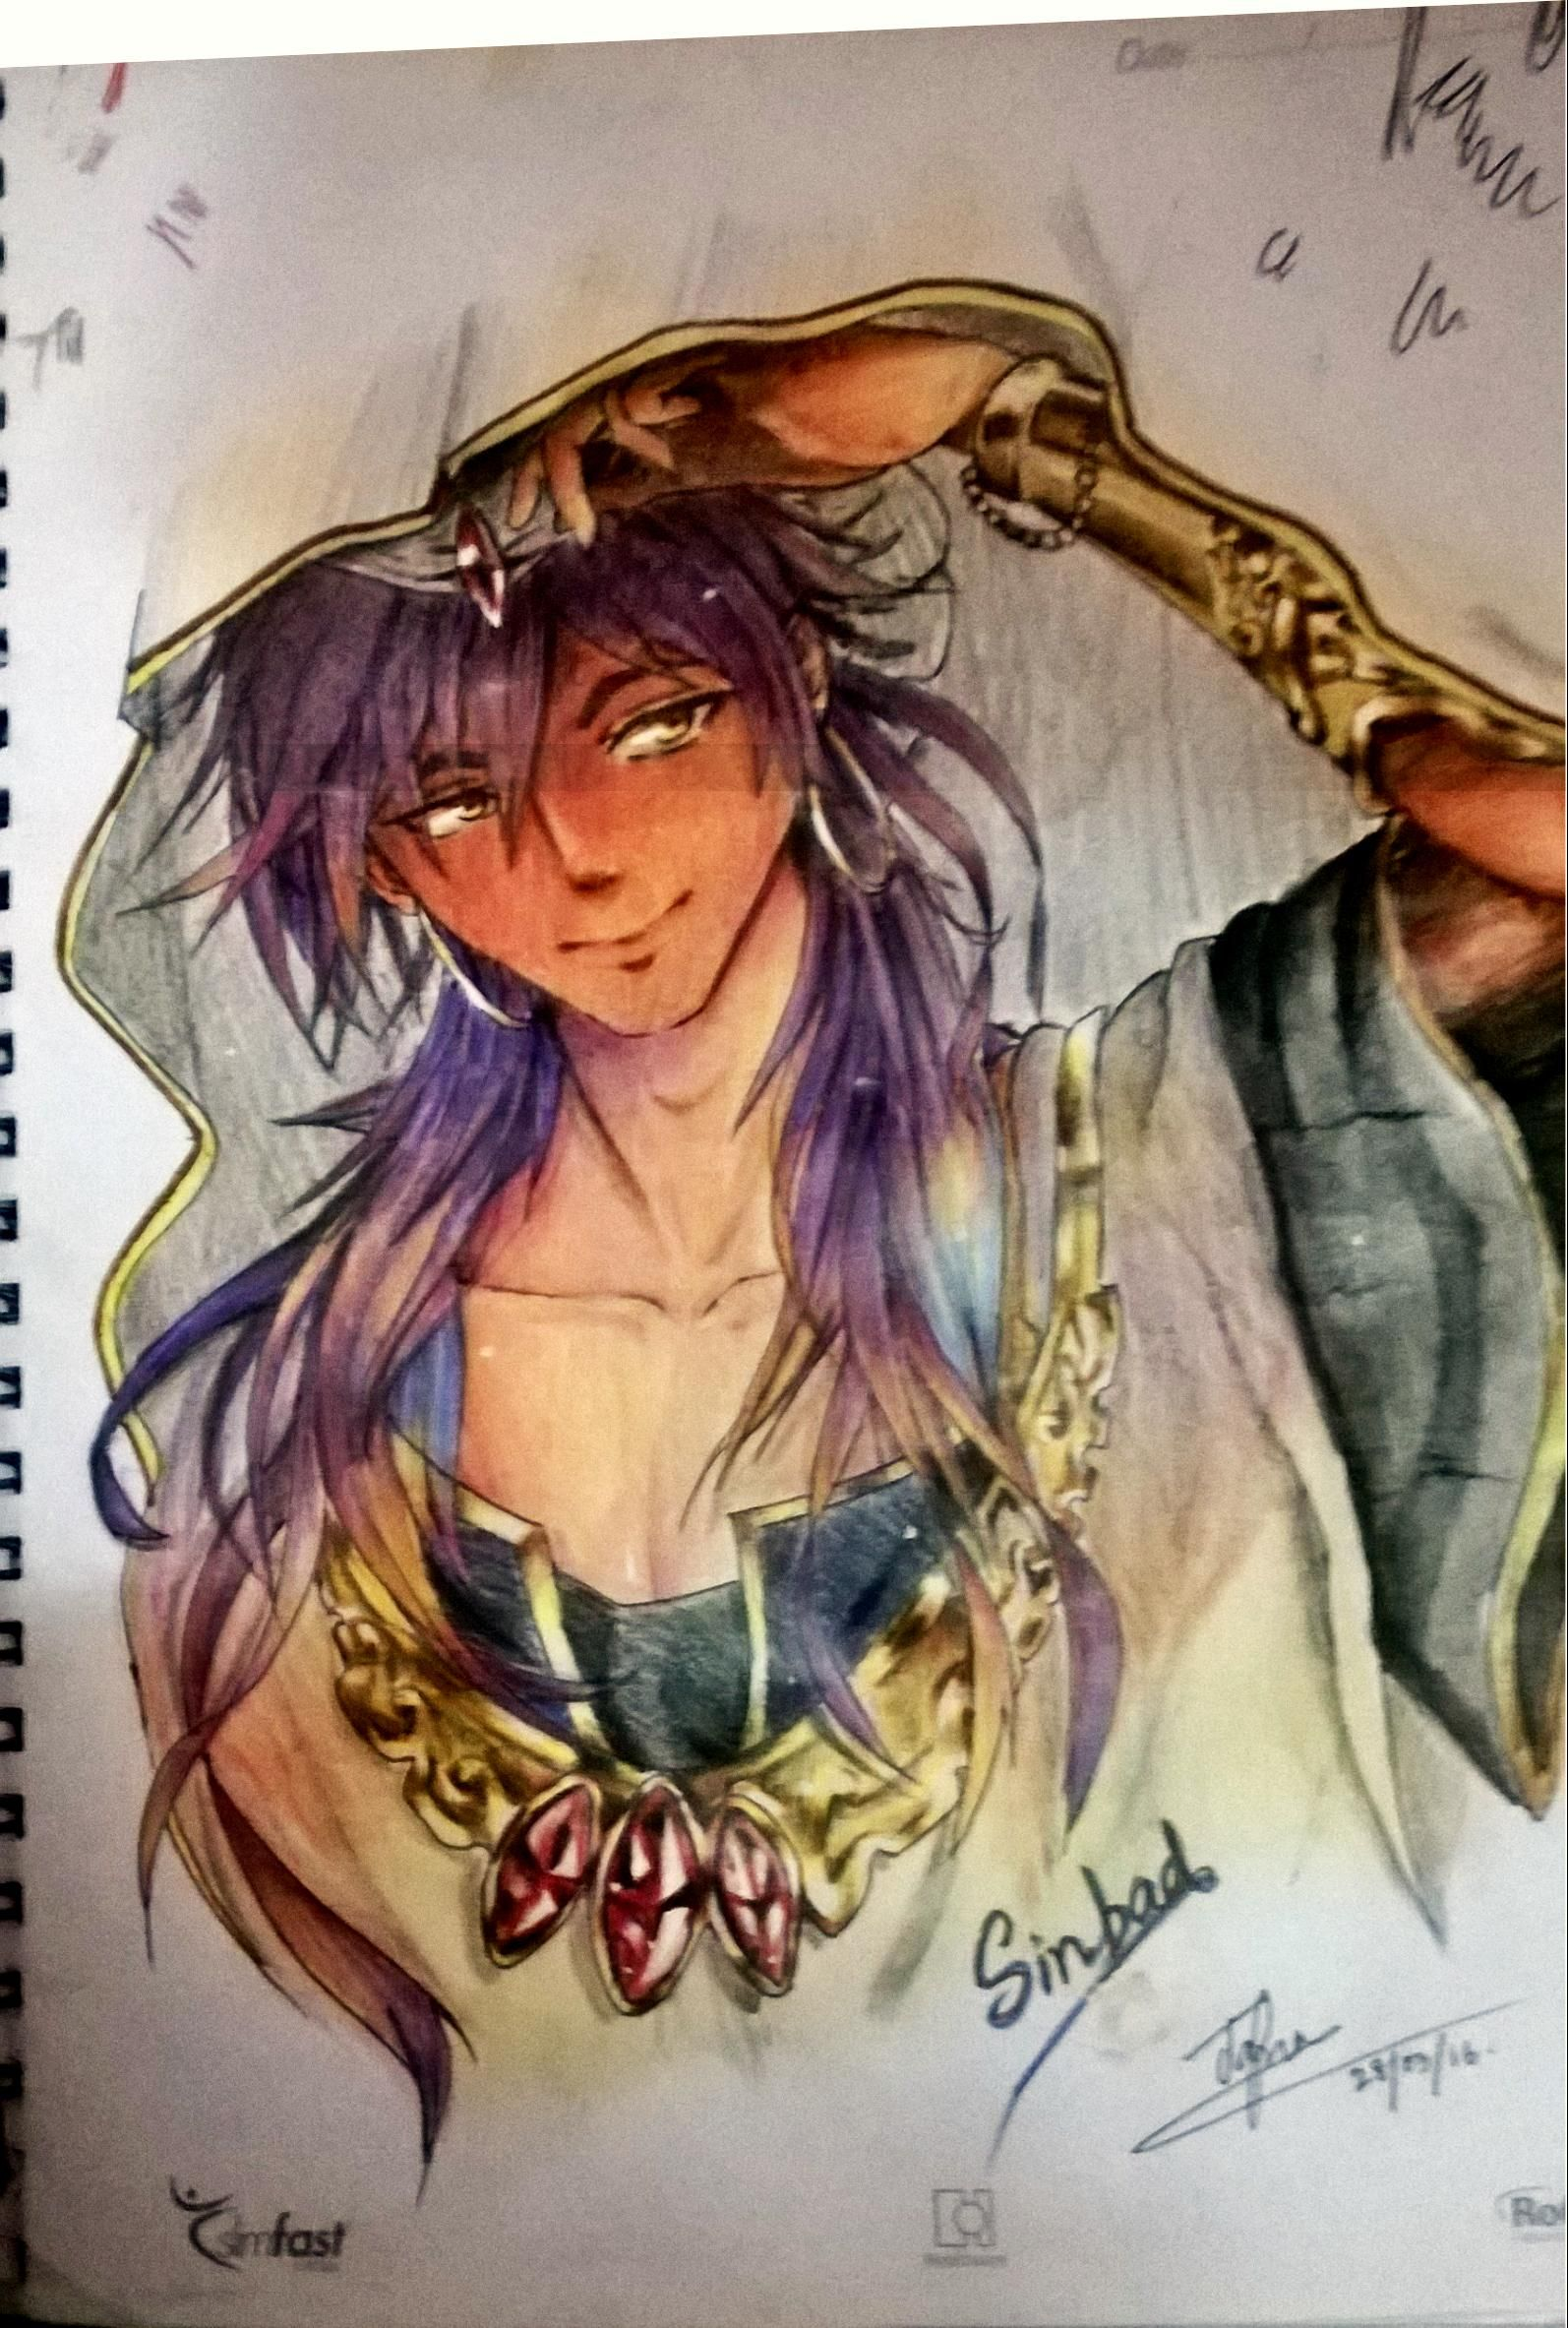 Anime Eye Coloring Tutorial Using Colored Pencils Anime Eyes Coloring Tutorial Easy Anime Eyes